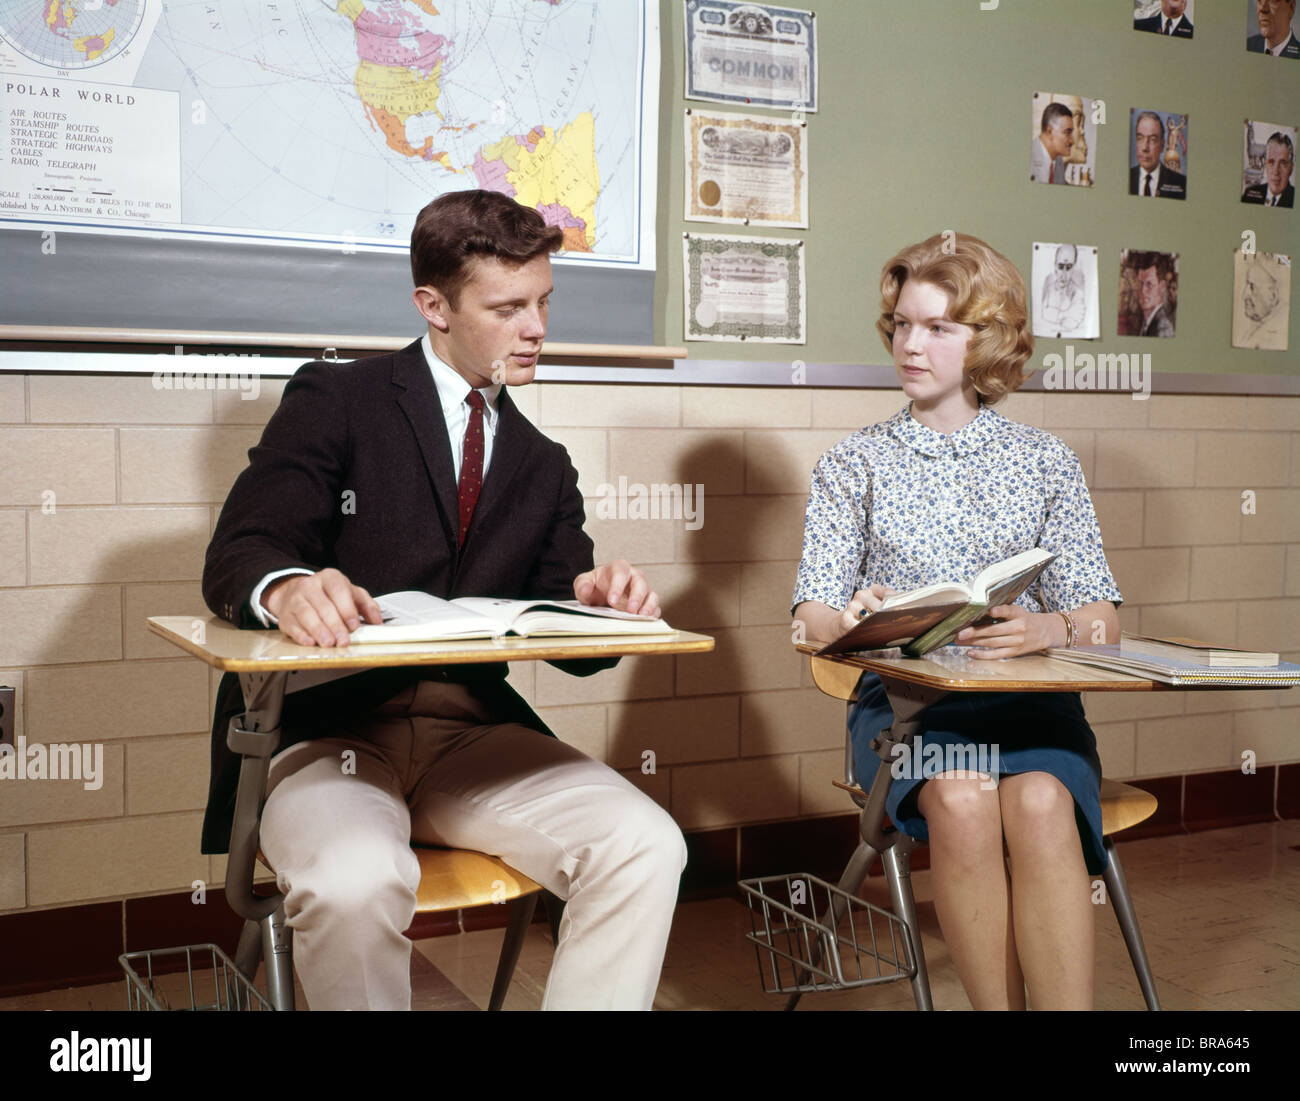 1960s Teenage Boy Girl Seated Classroom Desks Talking